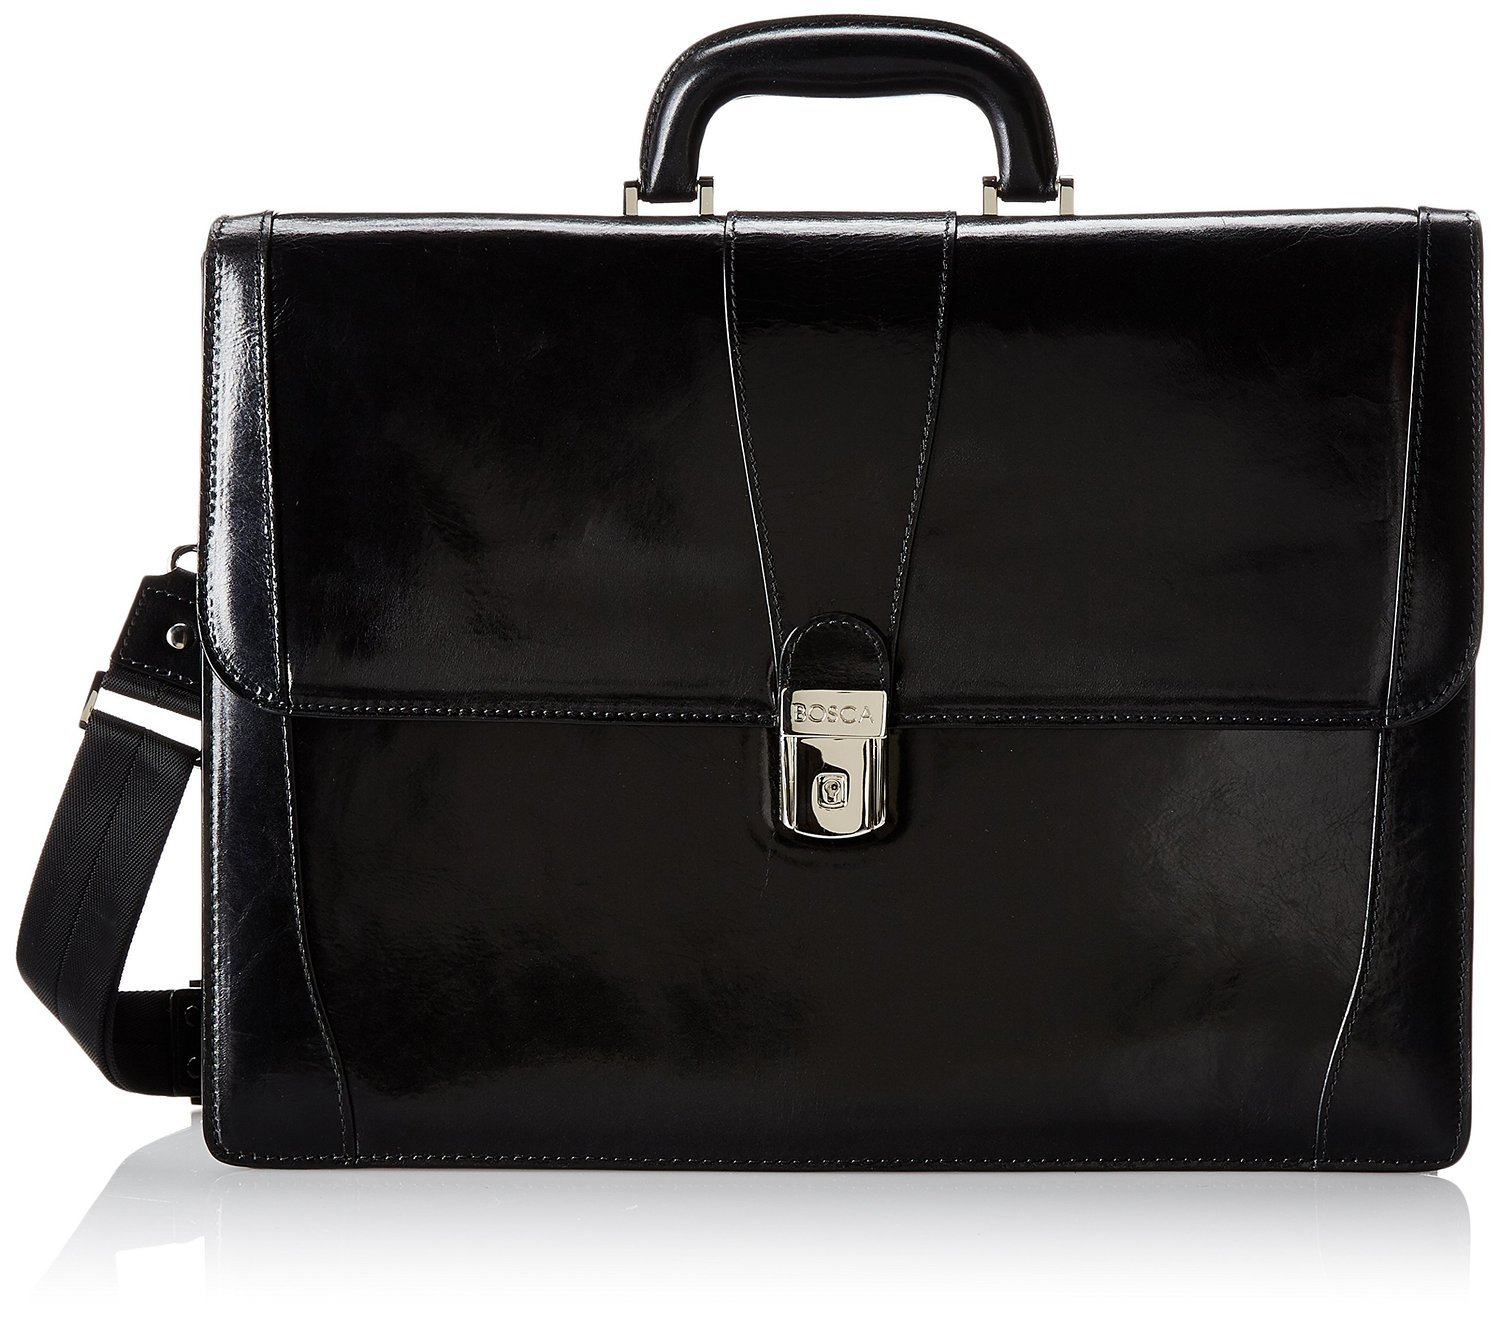 Bosca Leather Double Gusset Briefcase - Black Old Leather by Bosca Leather